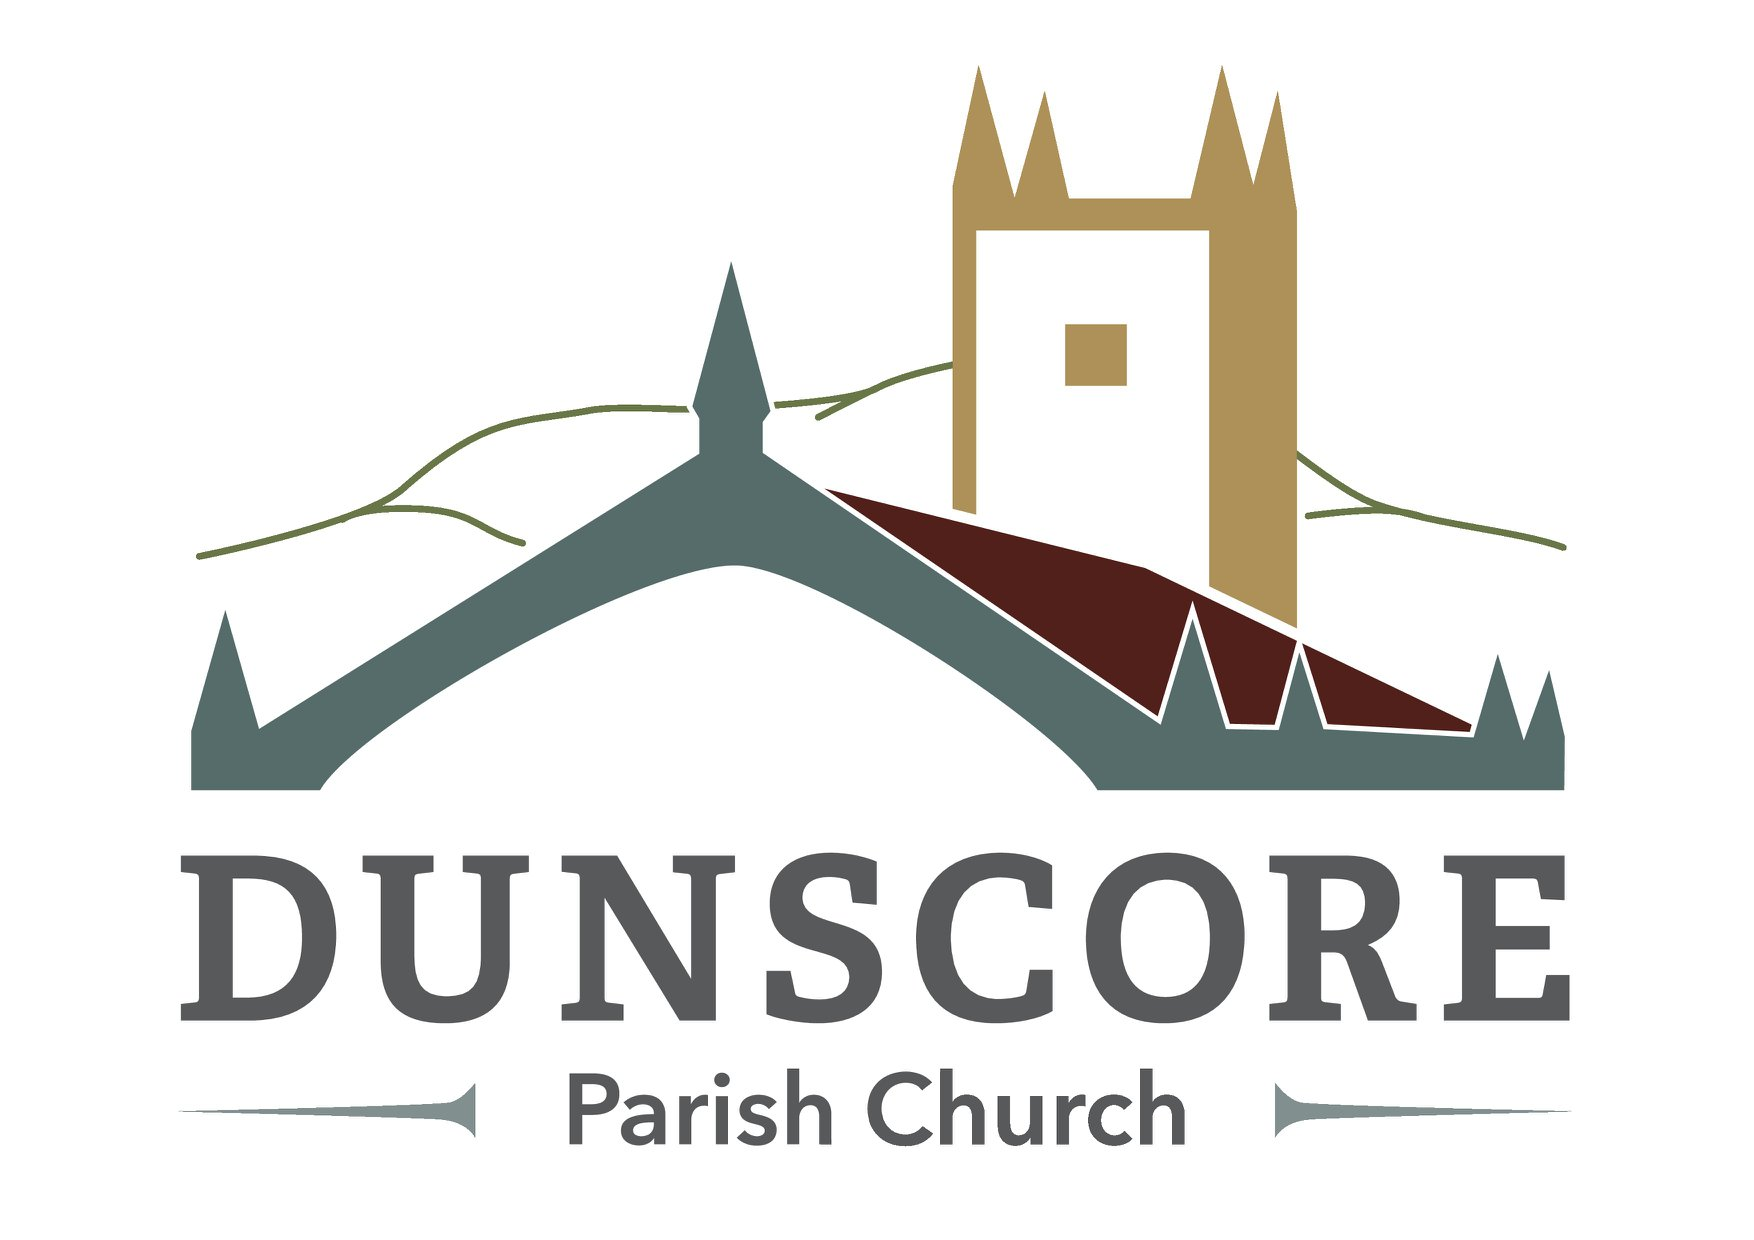 Dunscore Parish Church